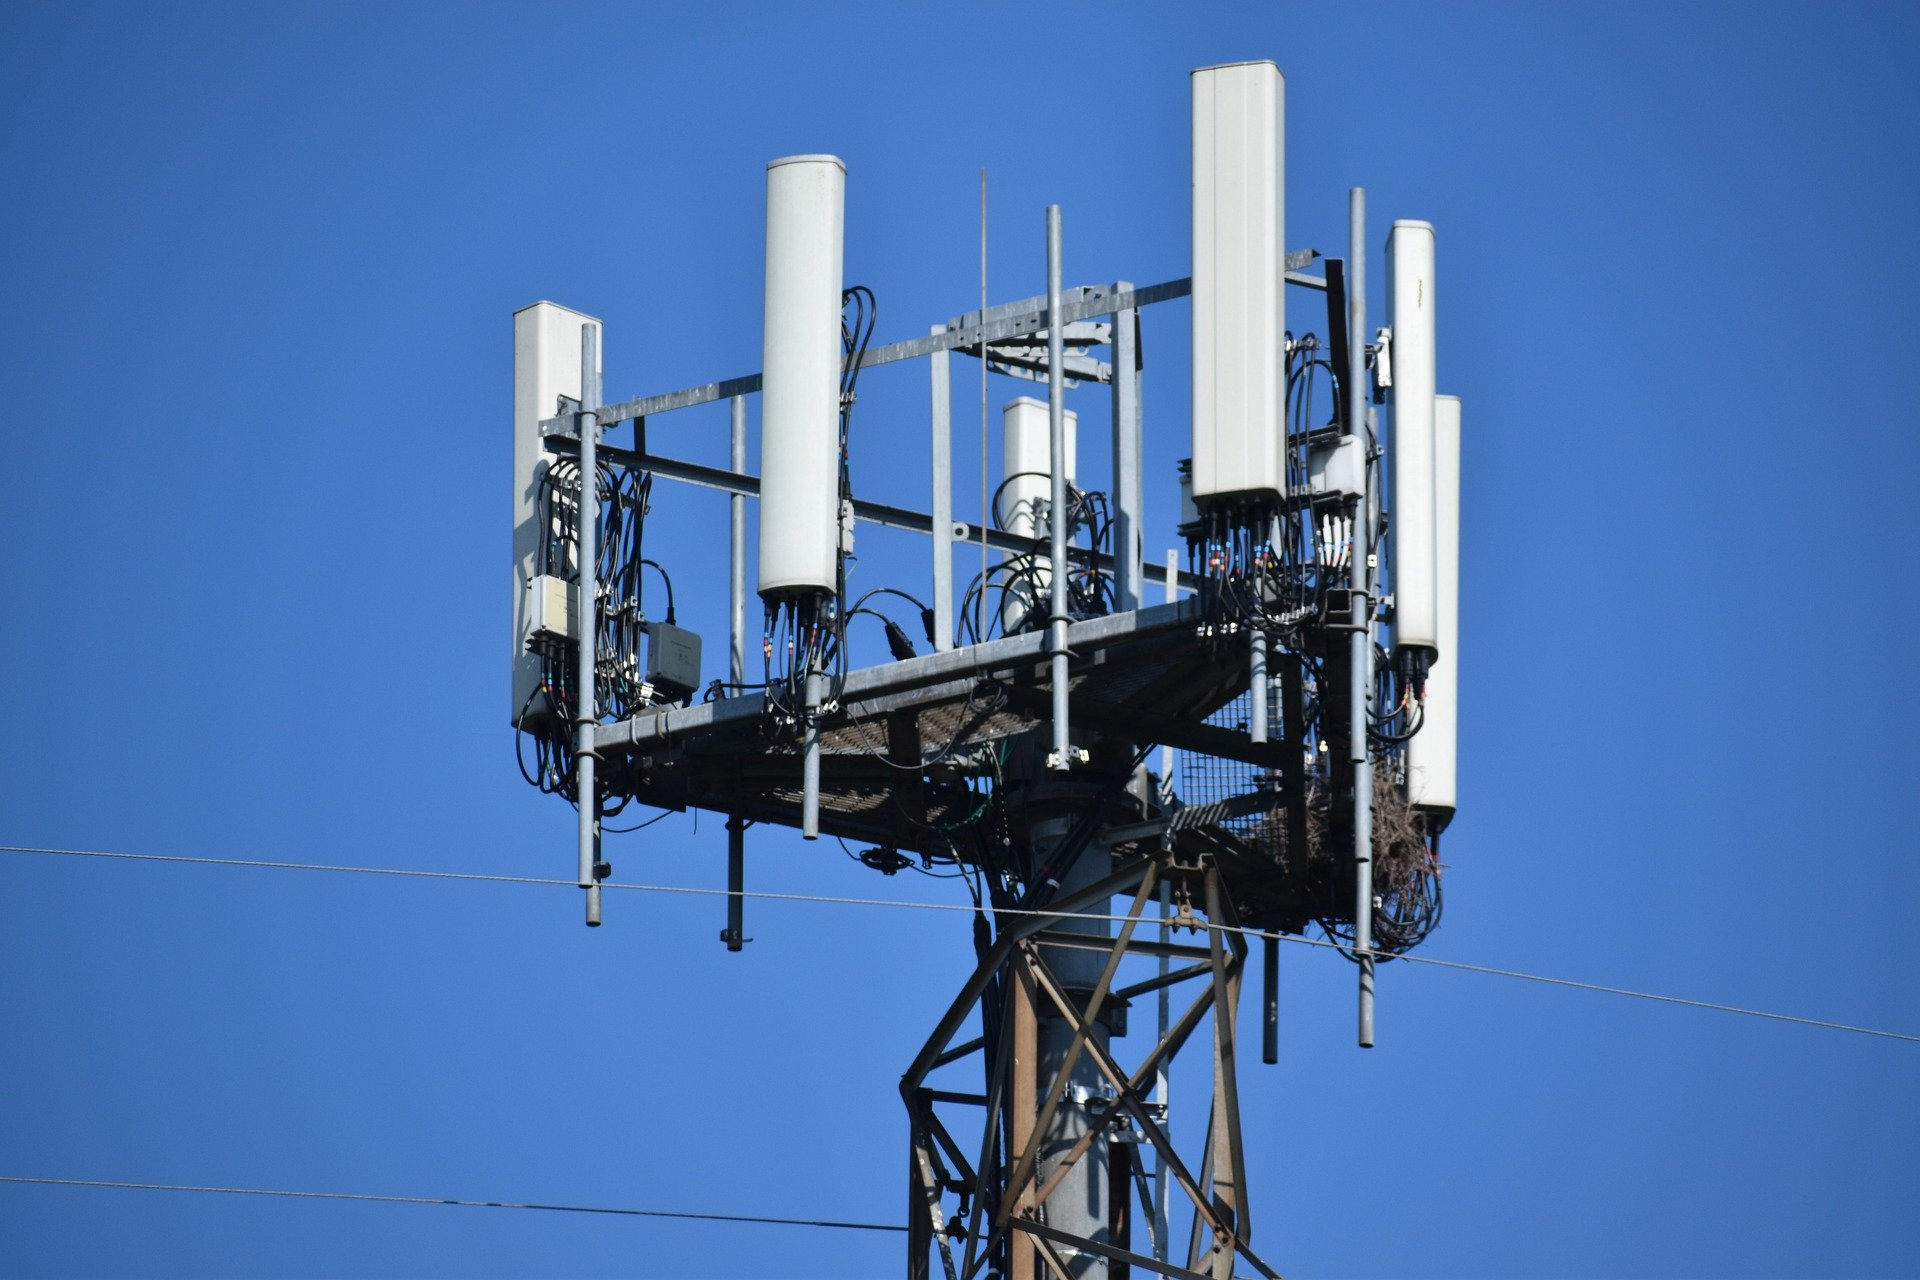 cell tower 5390644 1920 14. Juni 2021